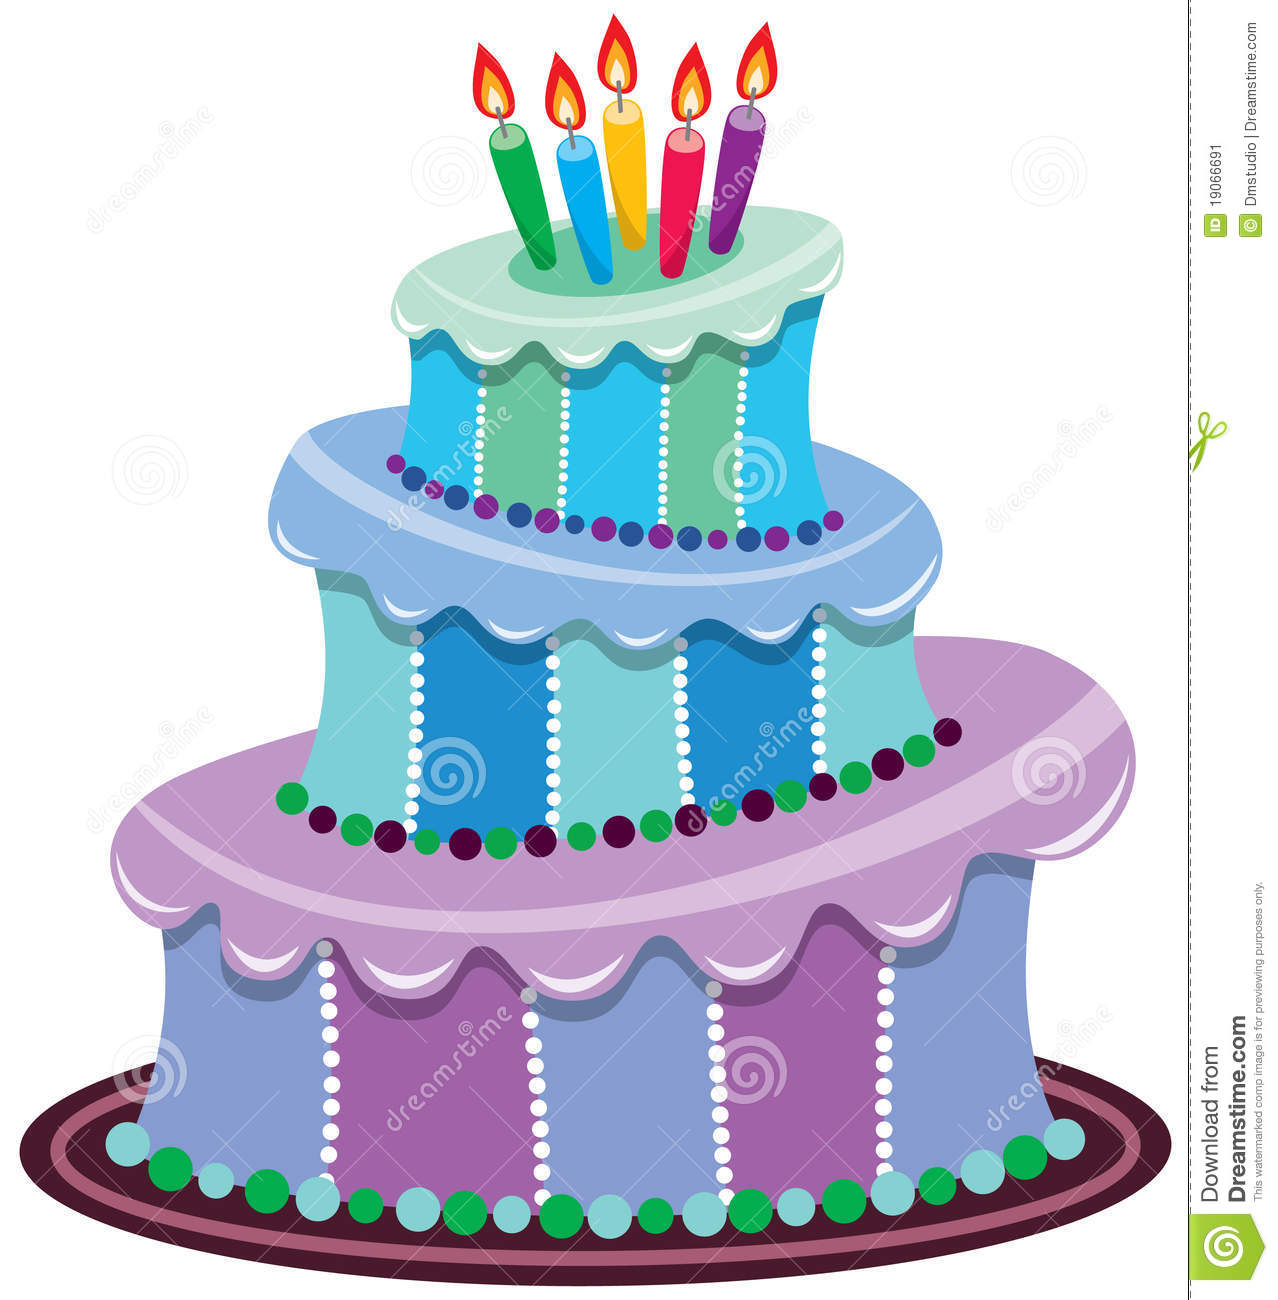 Vector Illustration Of Big Birthday Cake With Burning Candles